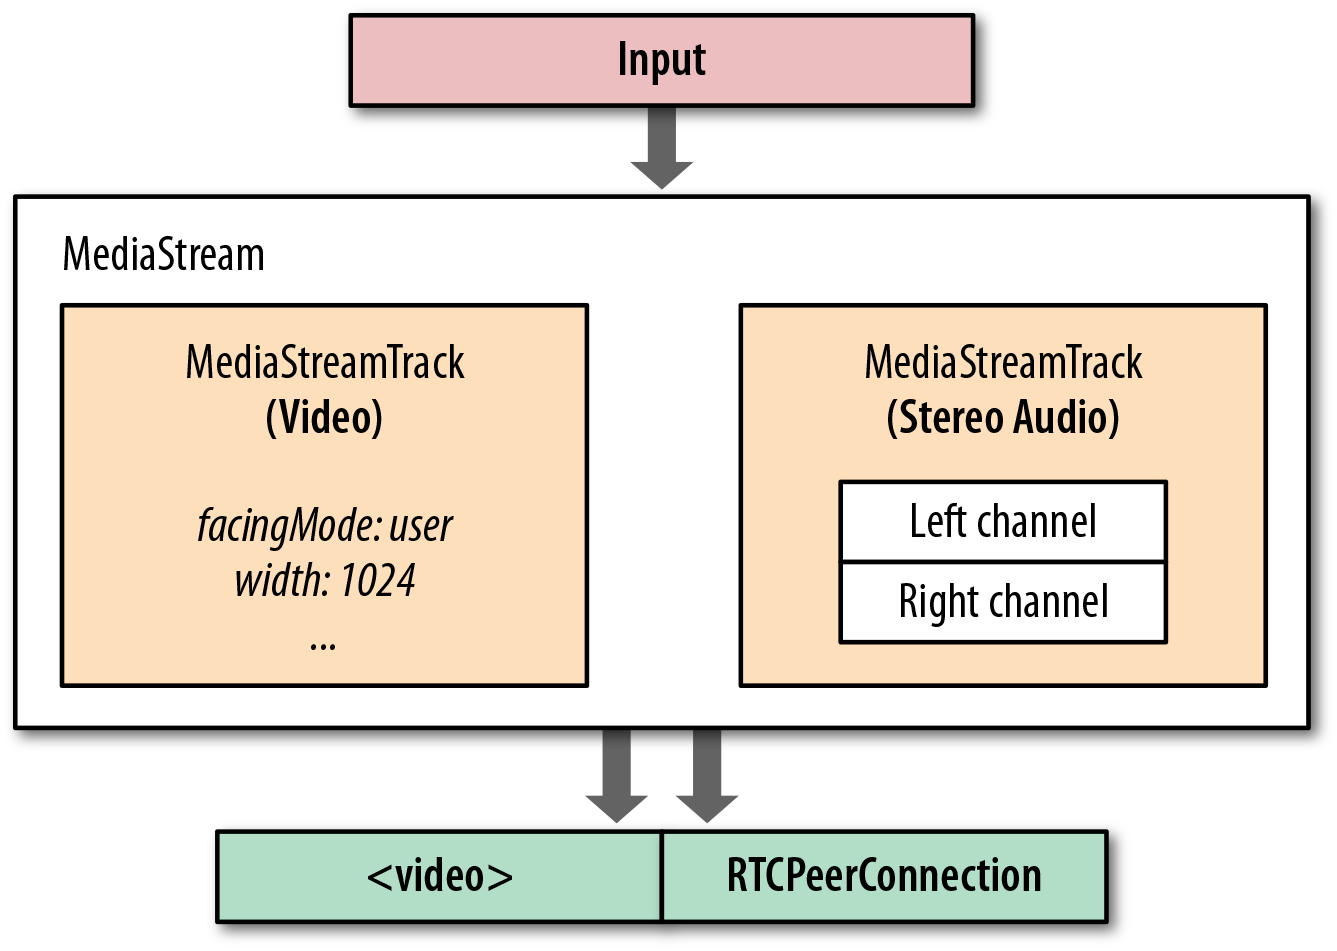 MediaStream carries one or more synchronized tracks